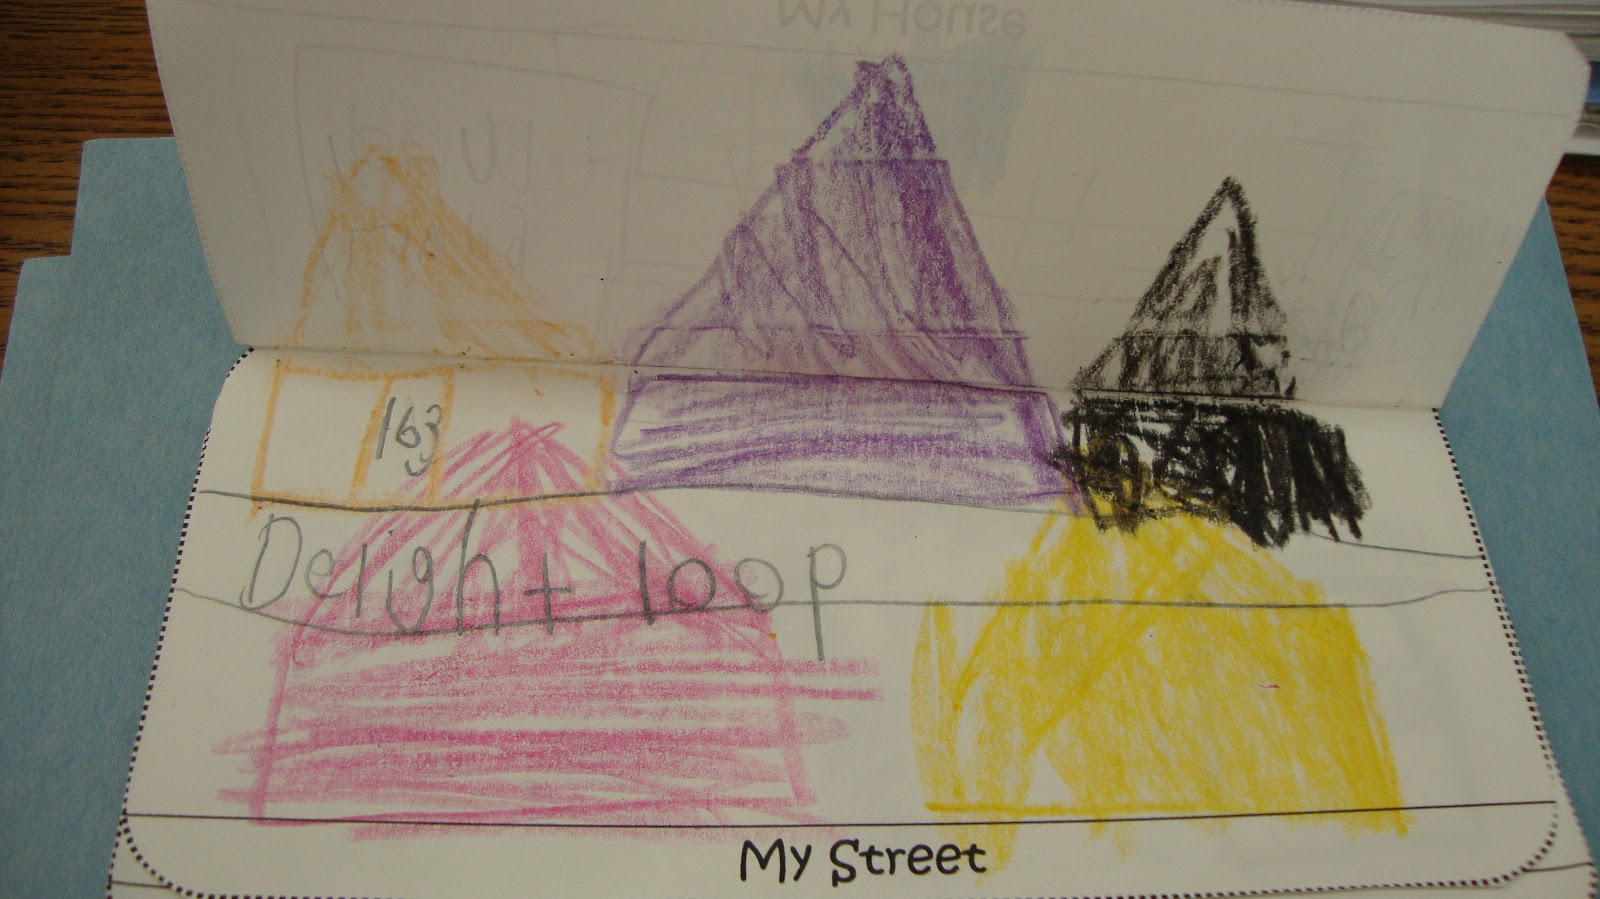 after we all made our own streets we started to talk about our city we looked at some google maps of our town and found important places like our school